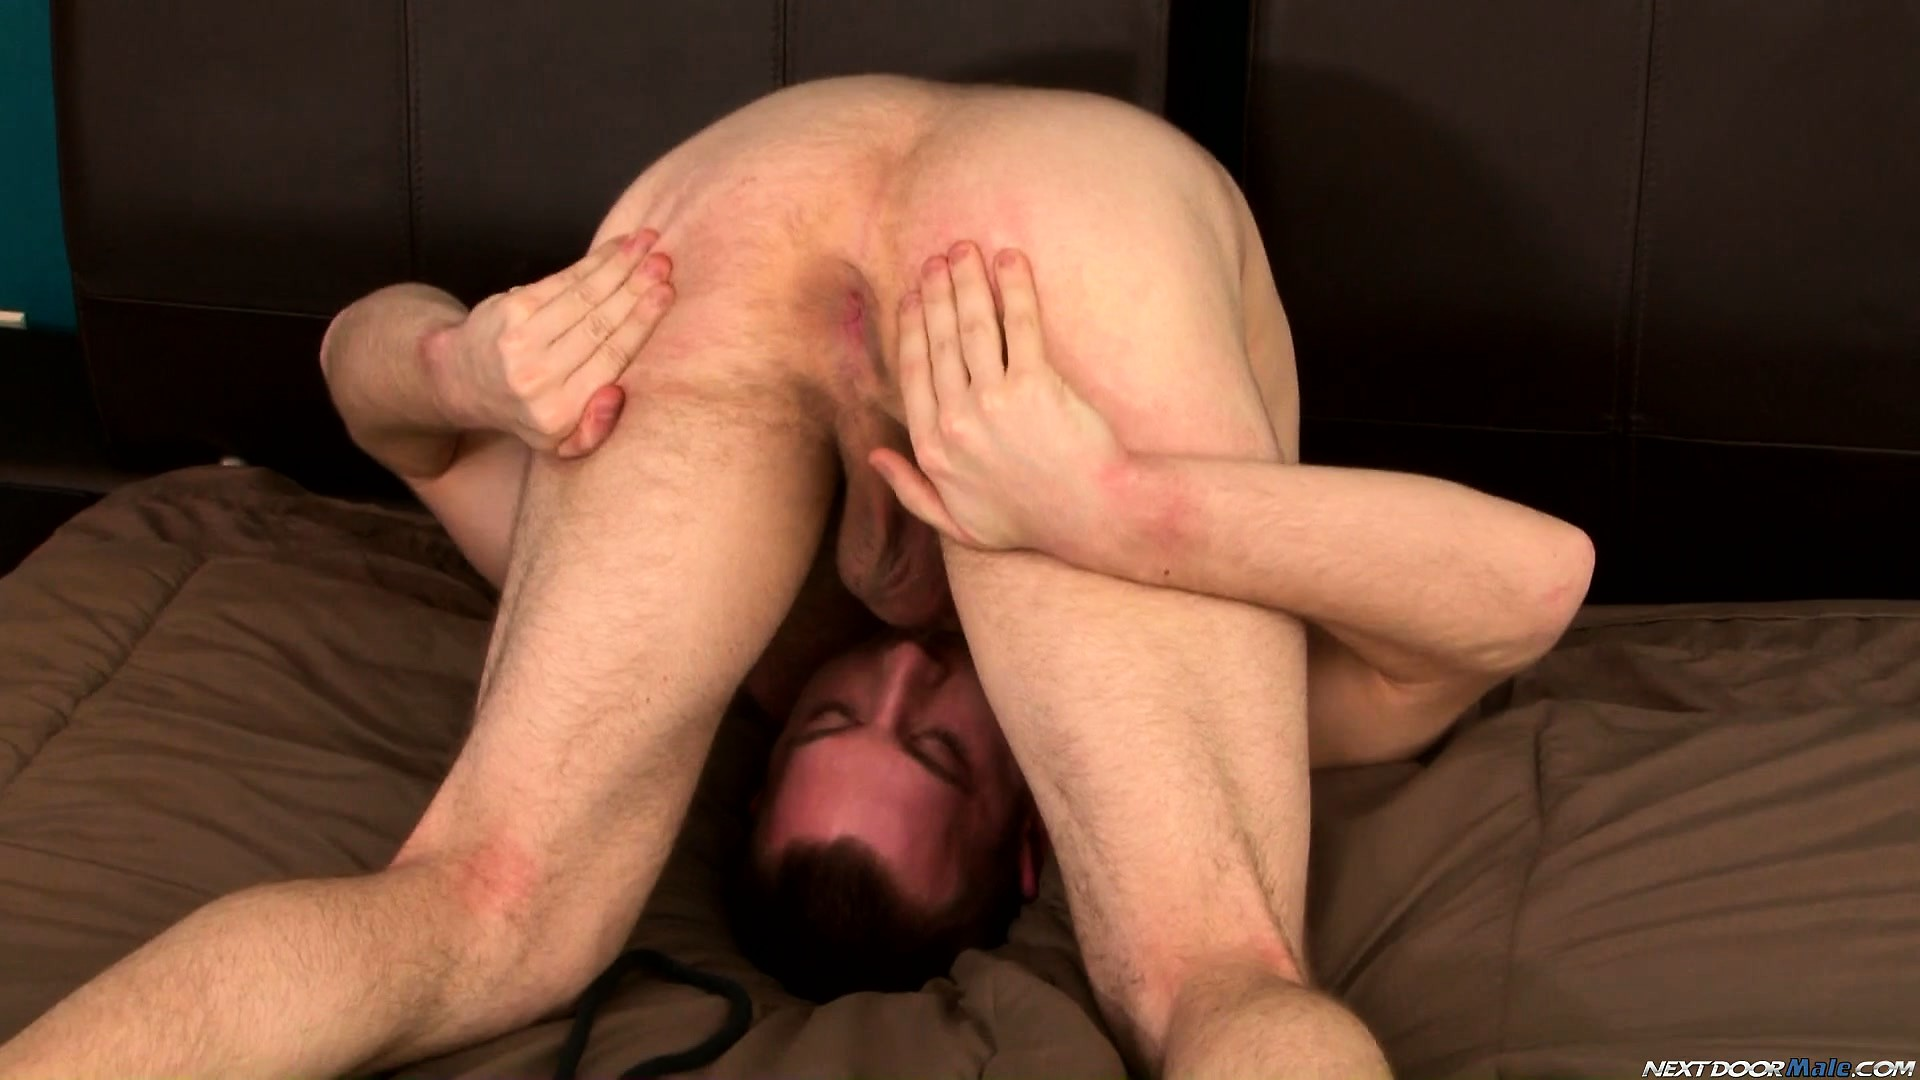 Porn Tube of Hairy Dude Cody Allen Performs Amazing And Irresistible Autofellatio